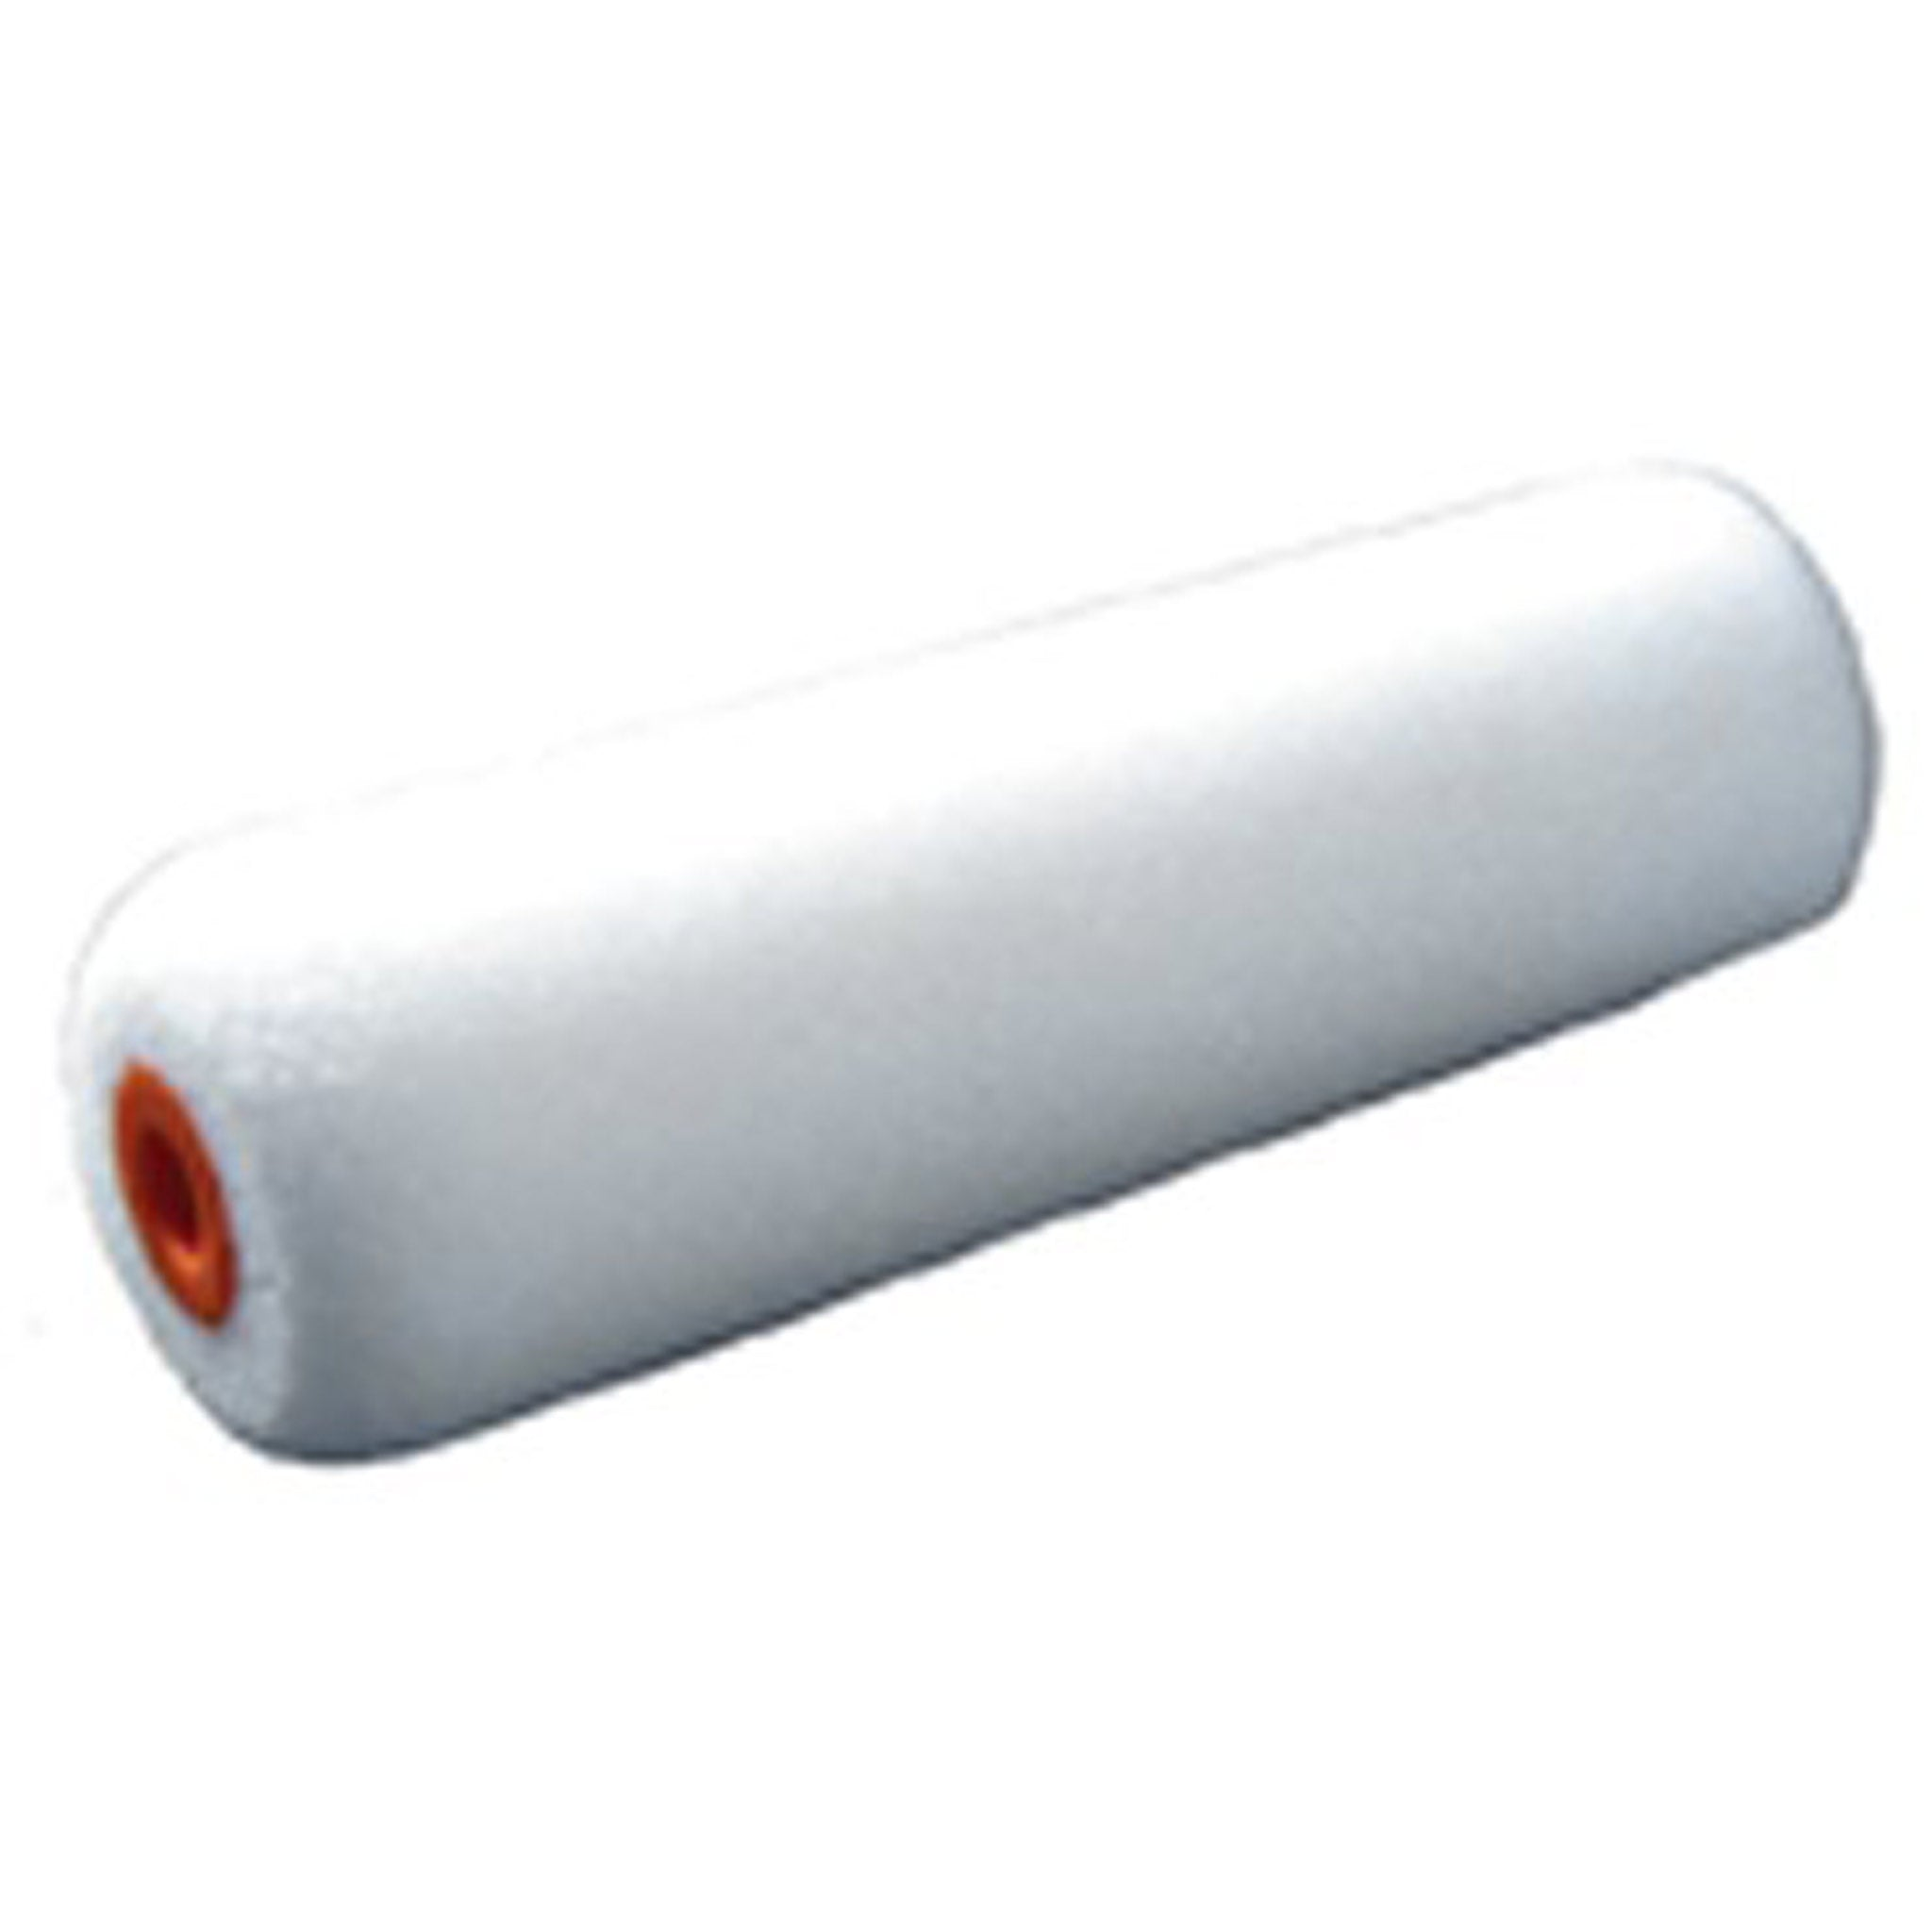 "4"" Superfine Foam Mini Roller Sleeves (Pack of 10)"